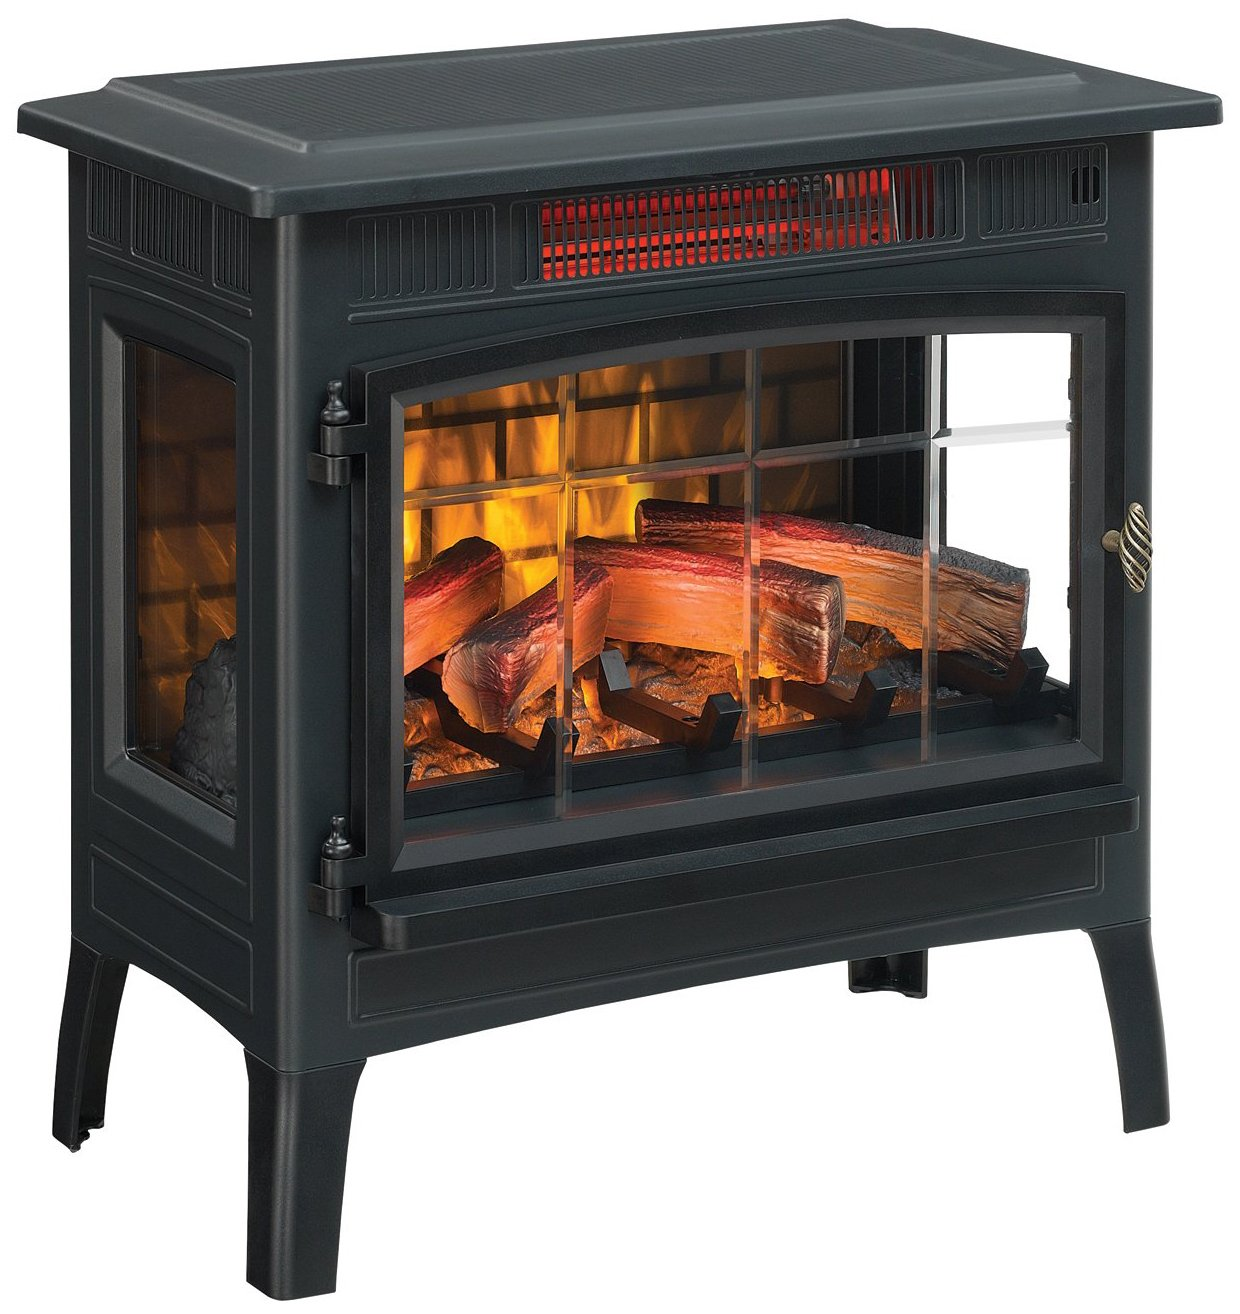 Duraflame DFI-5010-01 Infrared Quartz Fireplace Stove with 3D Flame Effect, Black by Duraflame